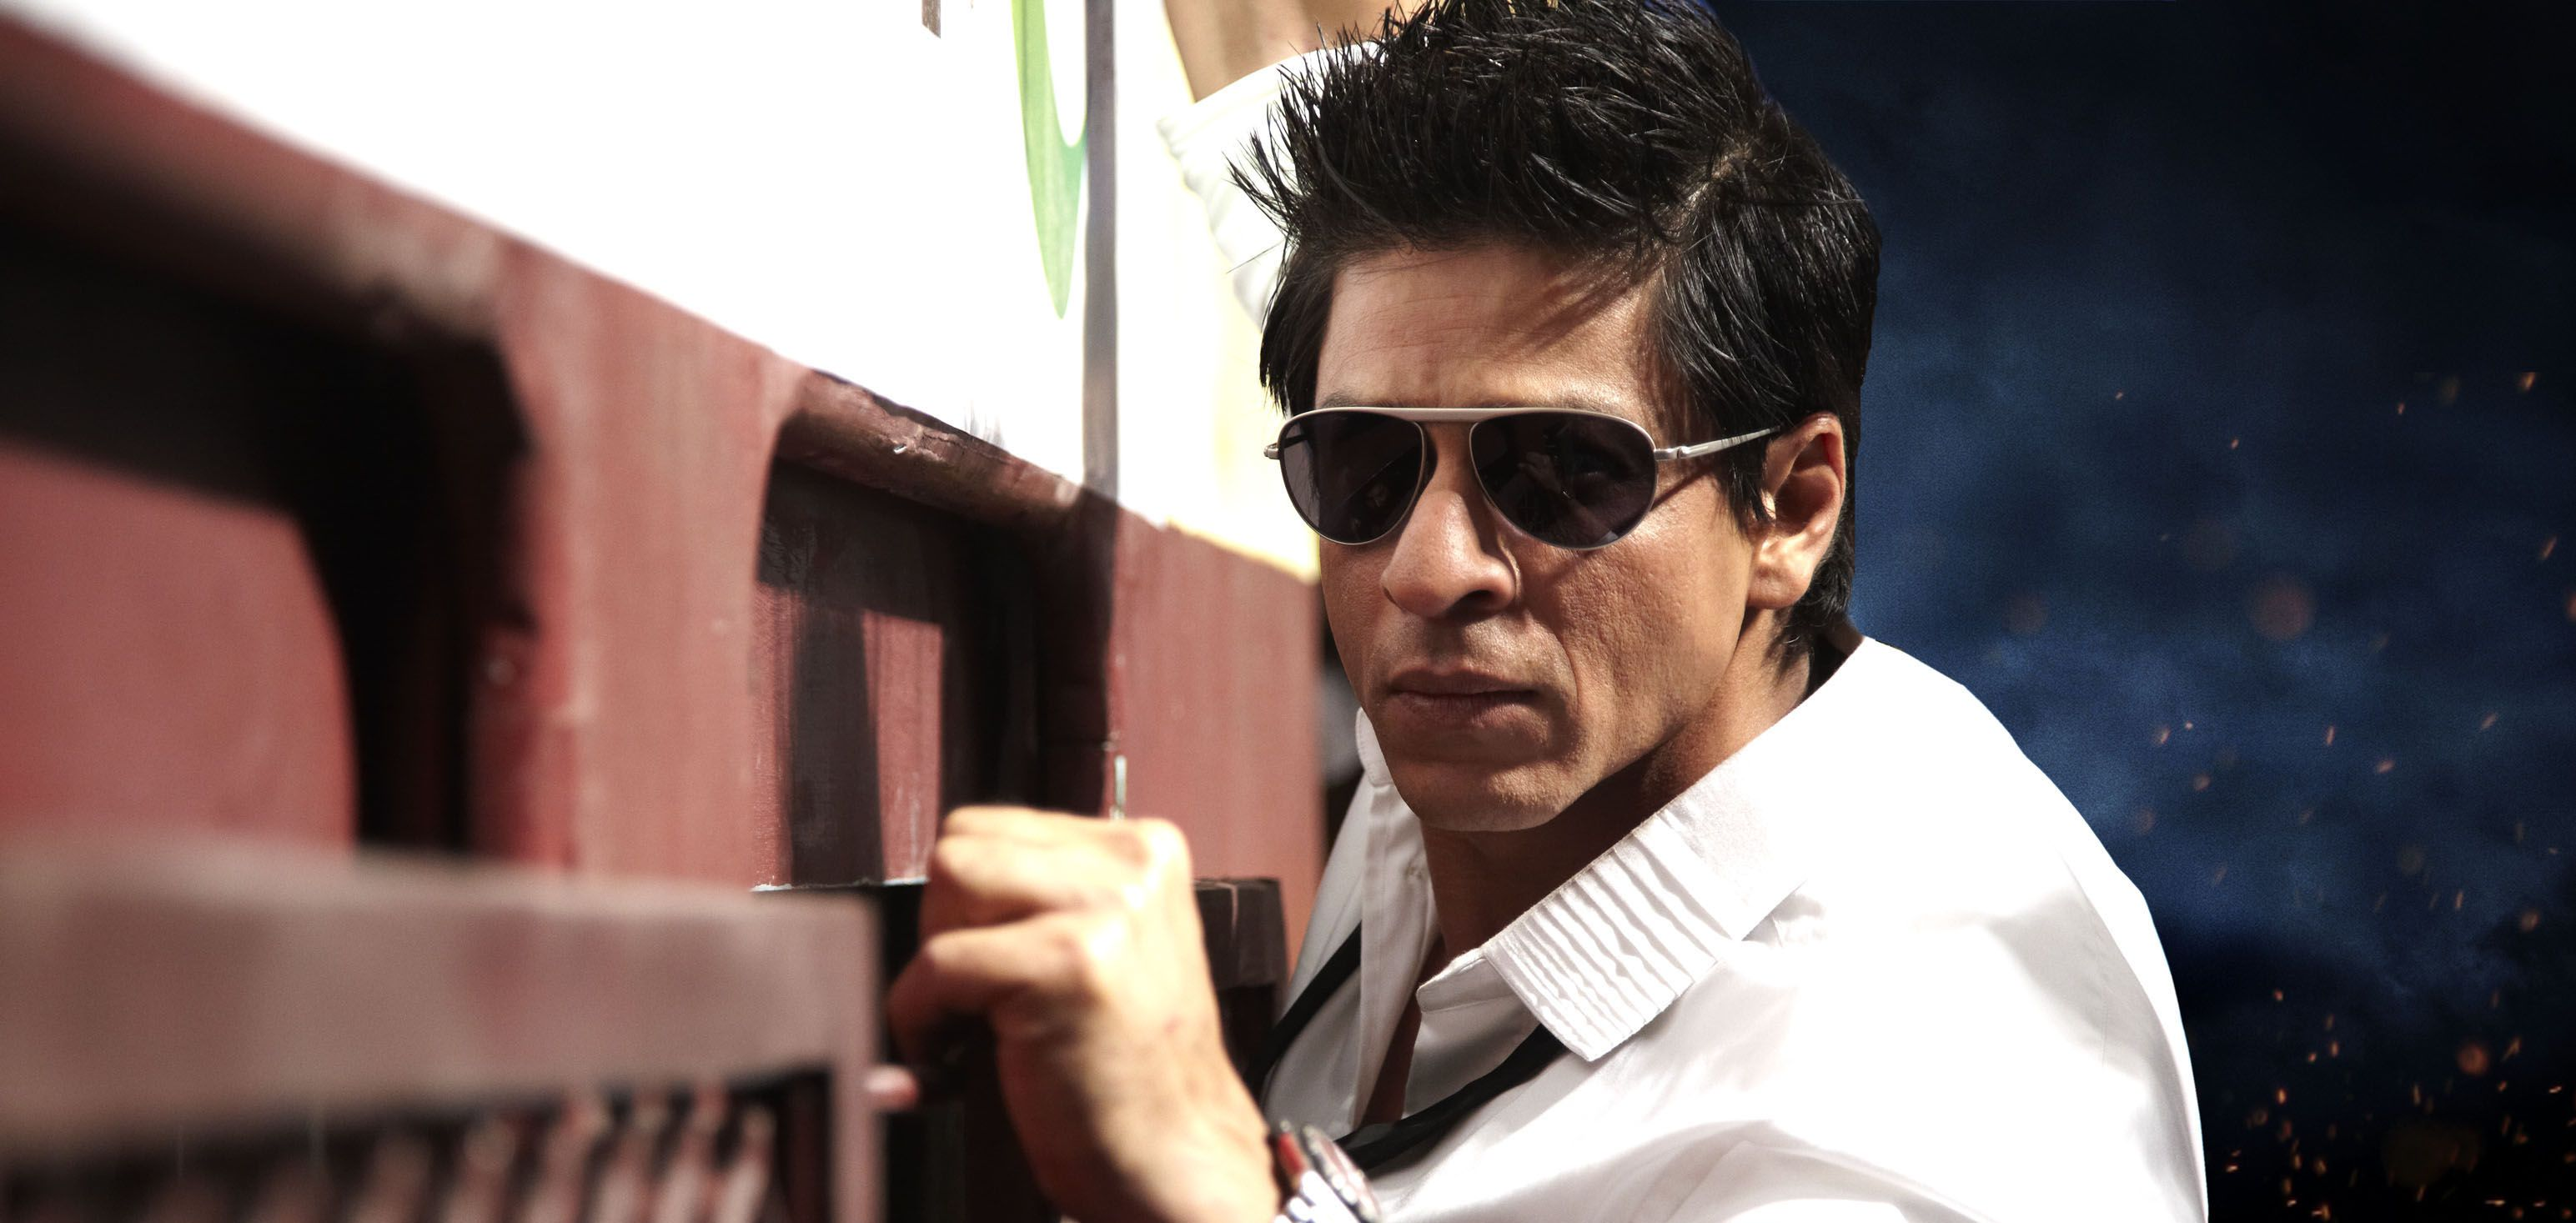 An image from Ra.One